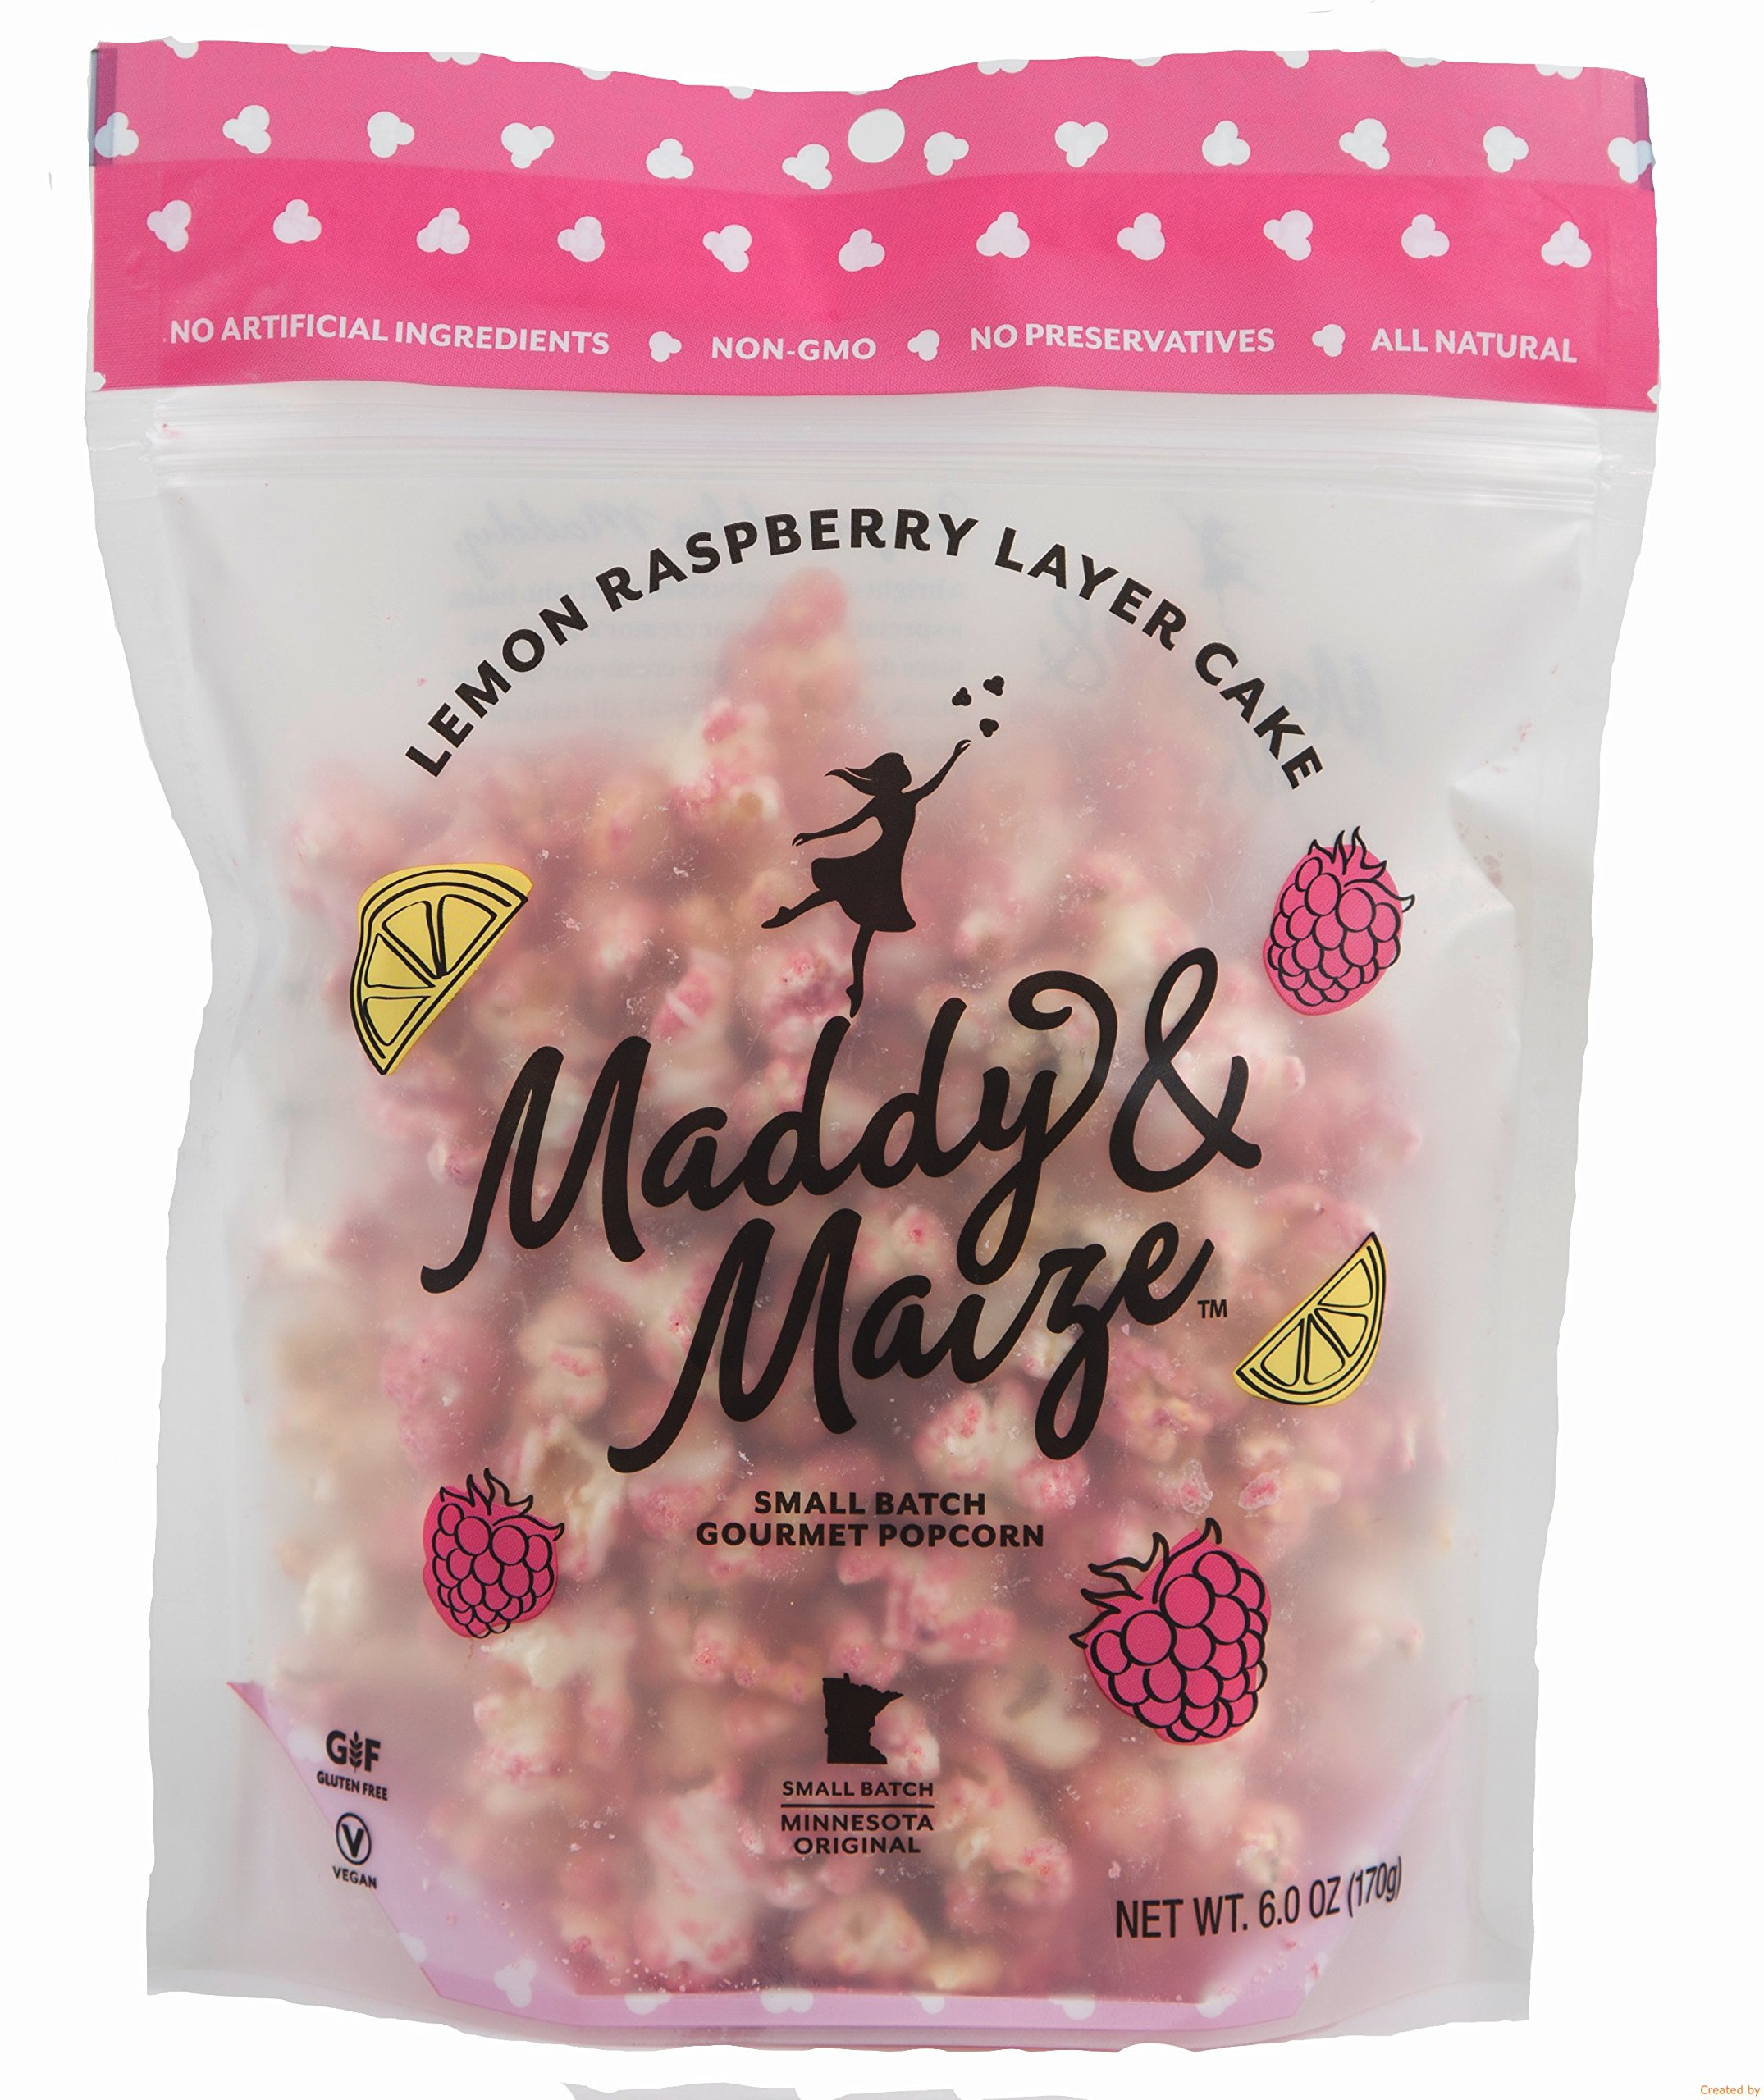 Maddy Maize Lemon Raspberry Layer Cake Gourmet Popcorn